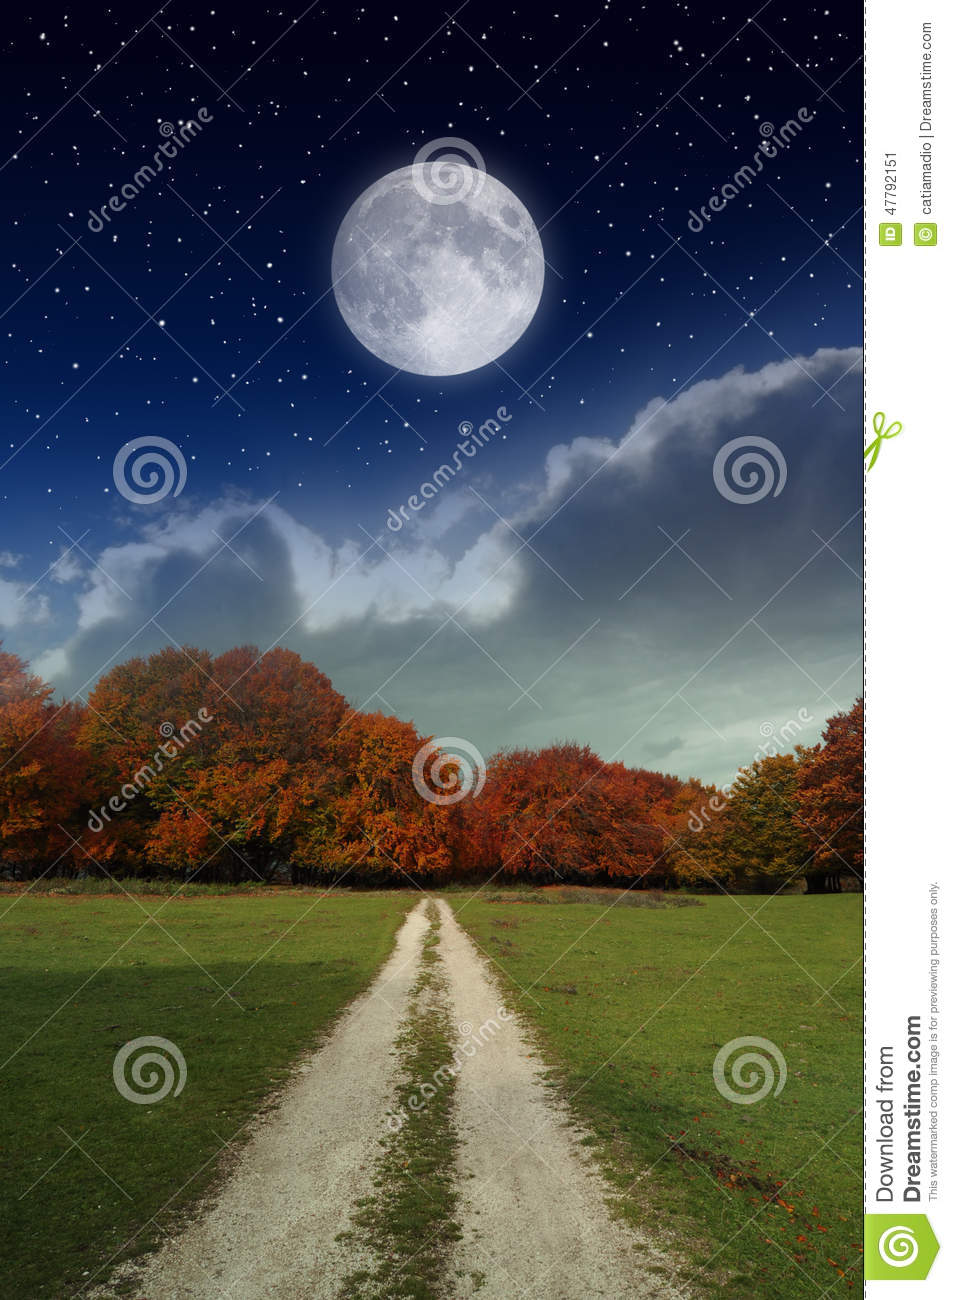 Moon in the country